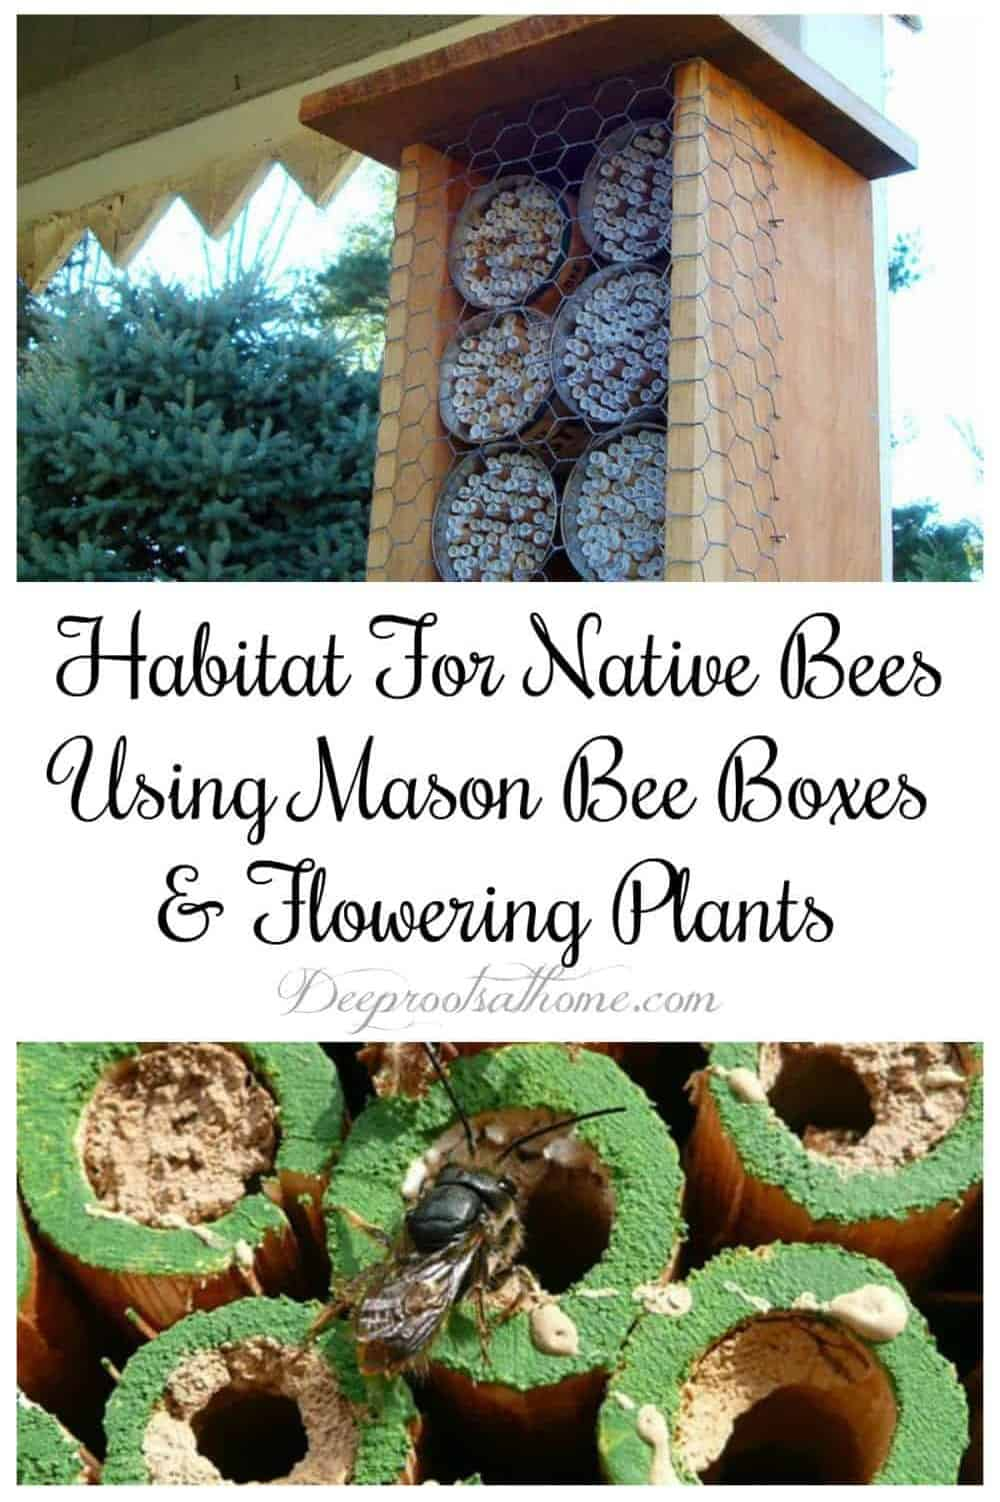 Habitat For Native Bees Using Mason Bee Boxes & Flowering Plants. 2 kinds of mason bee boxes